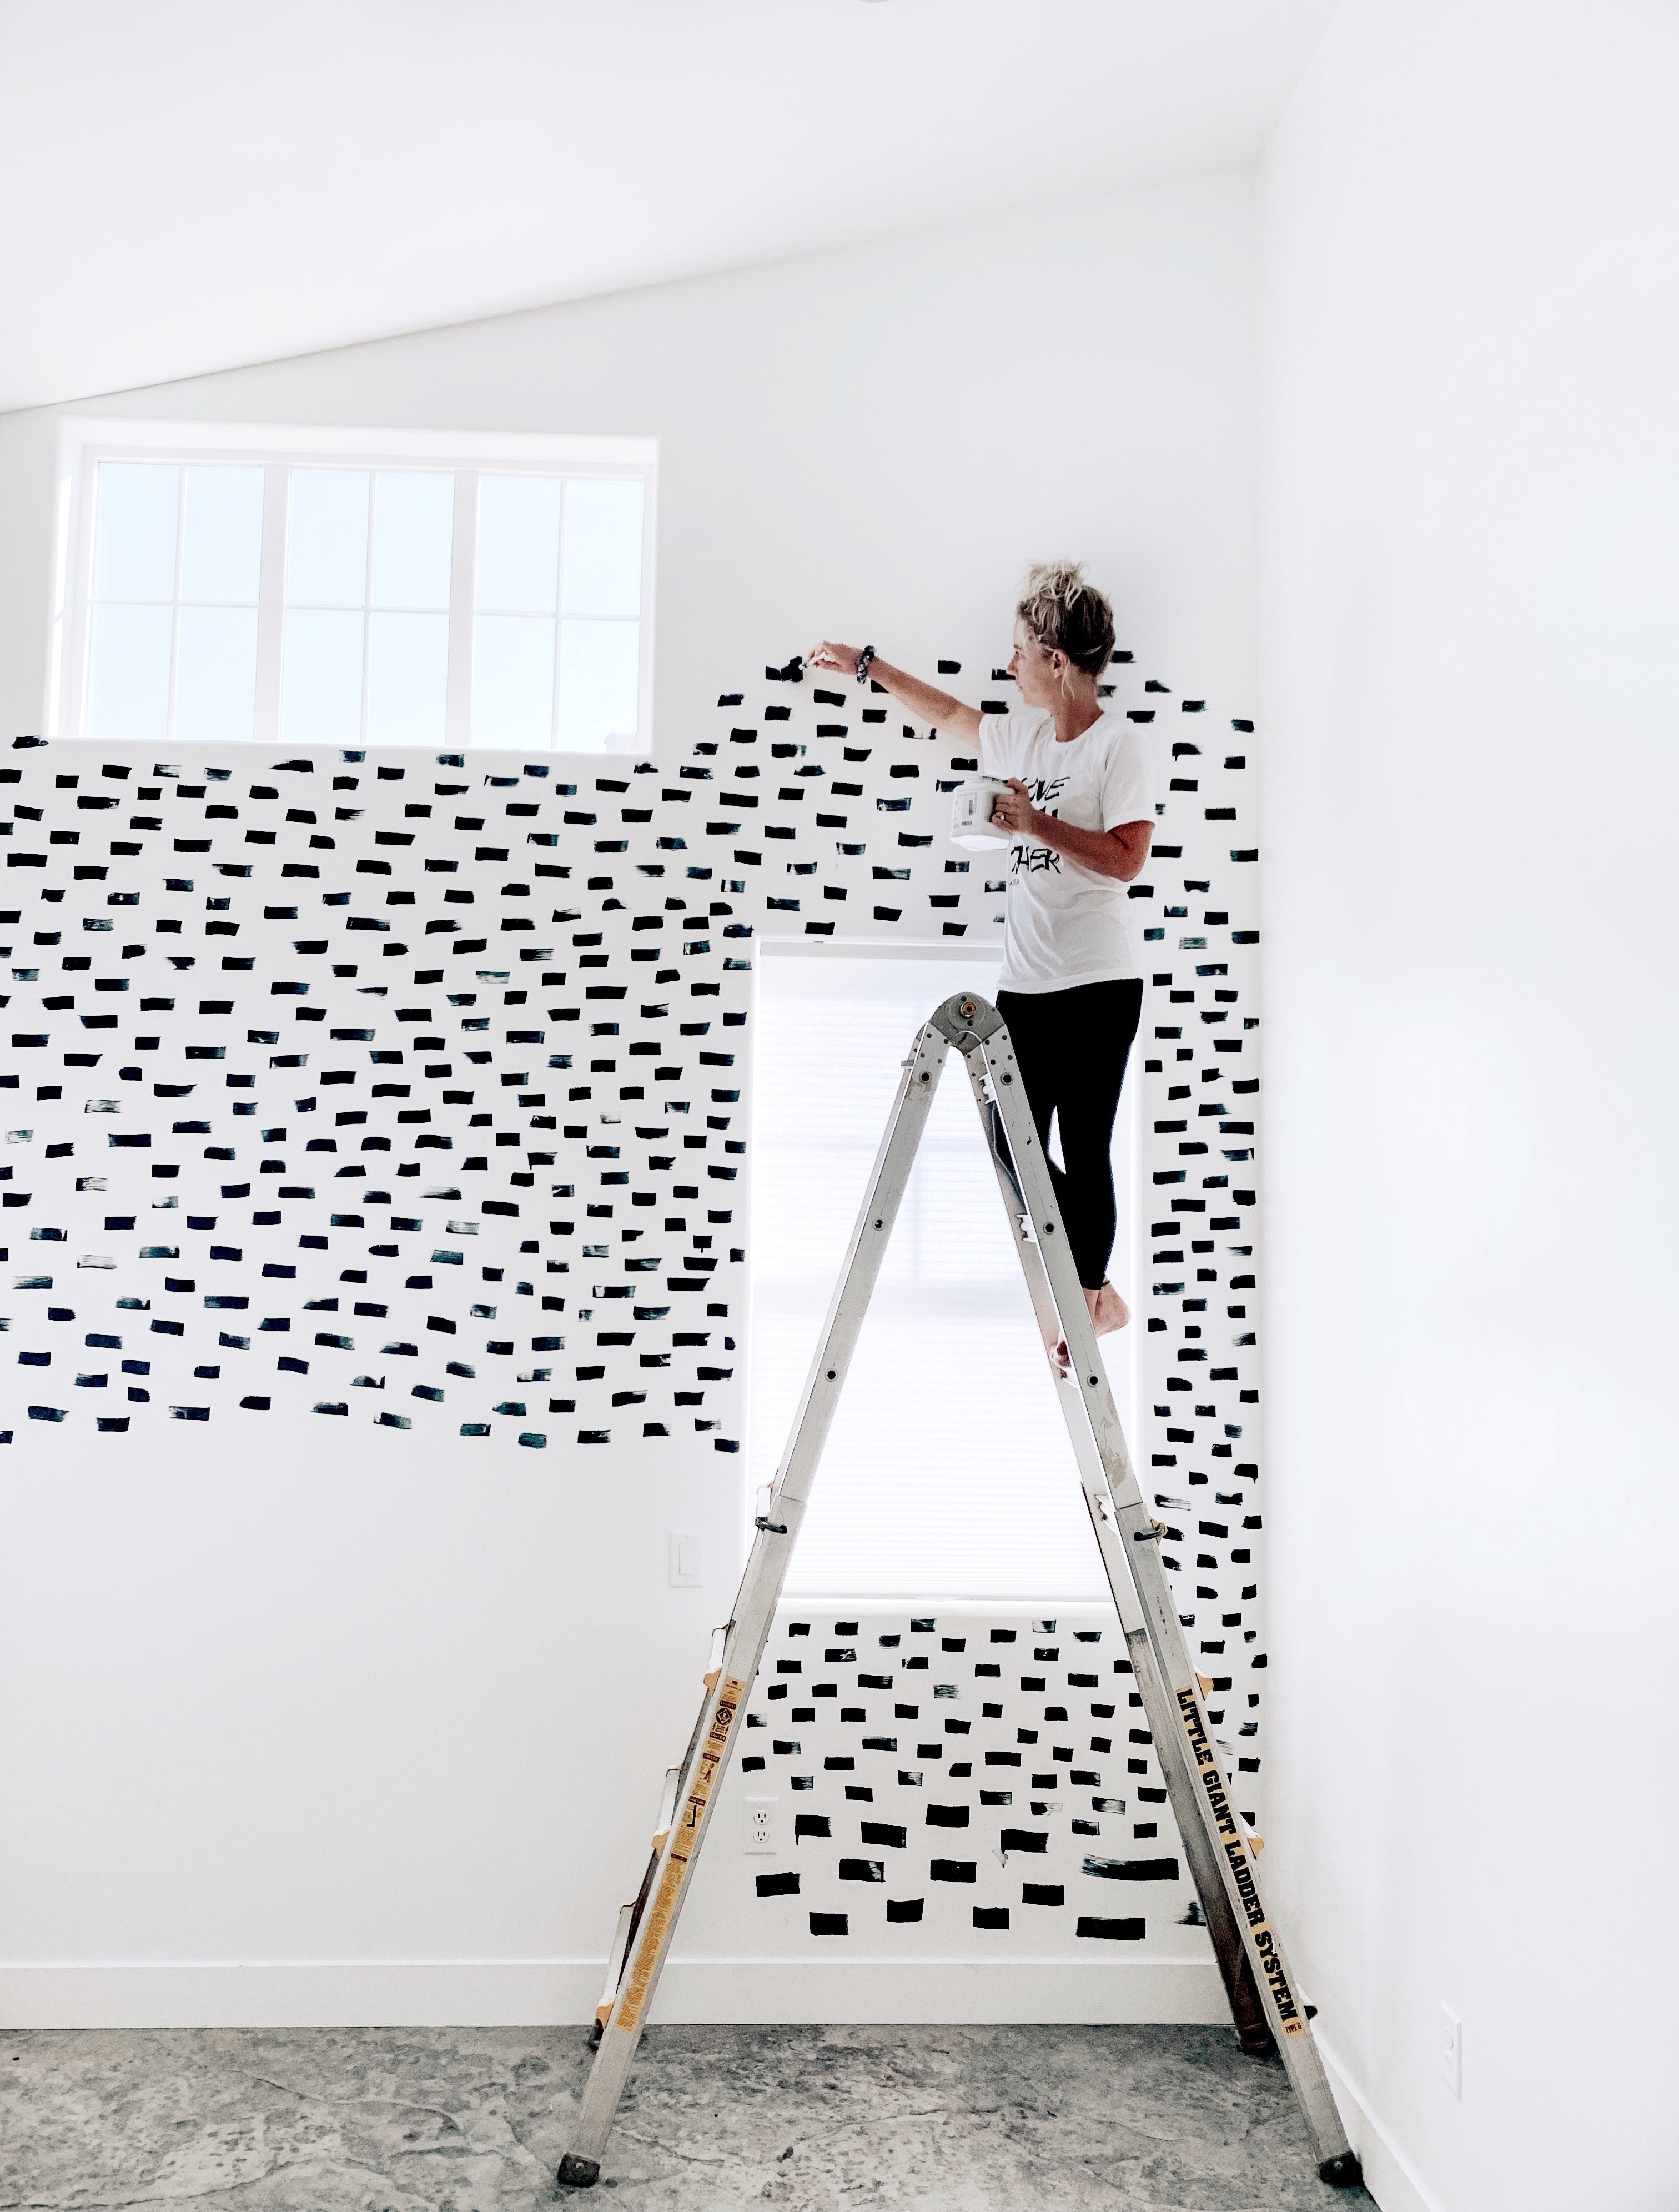 8 Freeform Wall Paint Ideas For The Carefree Diyer